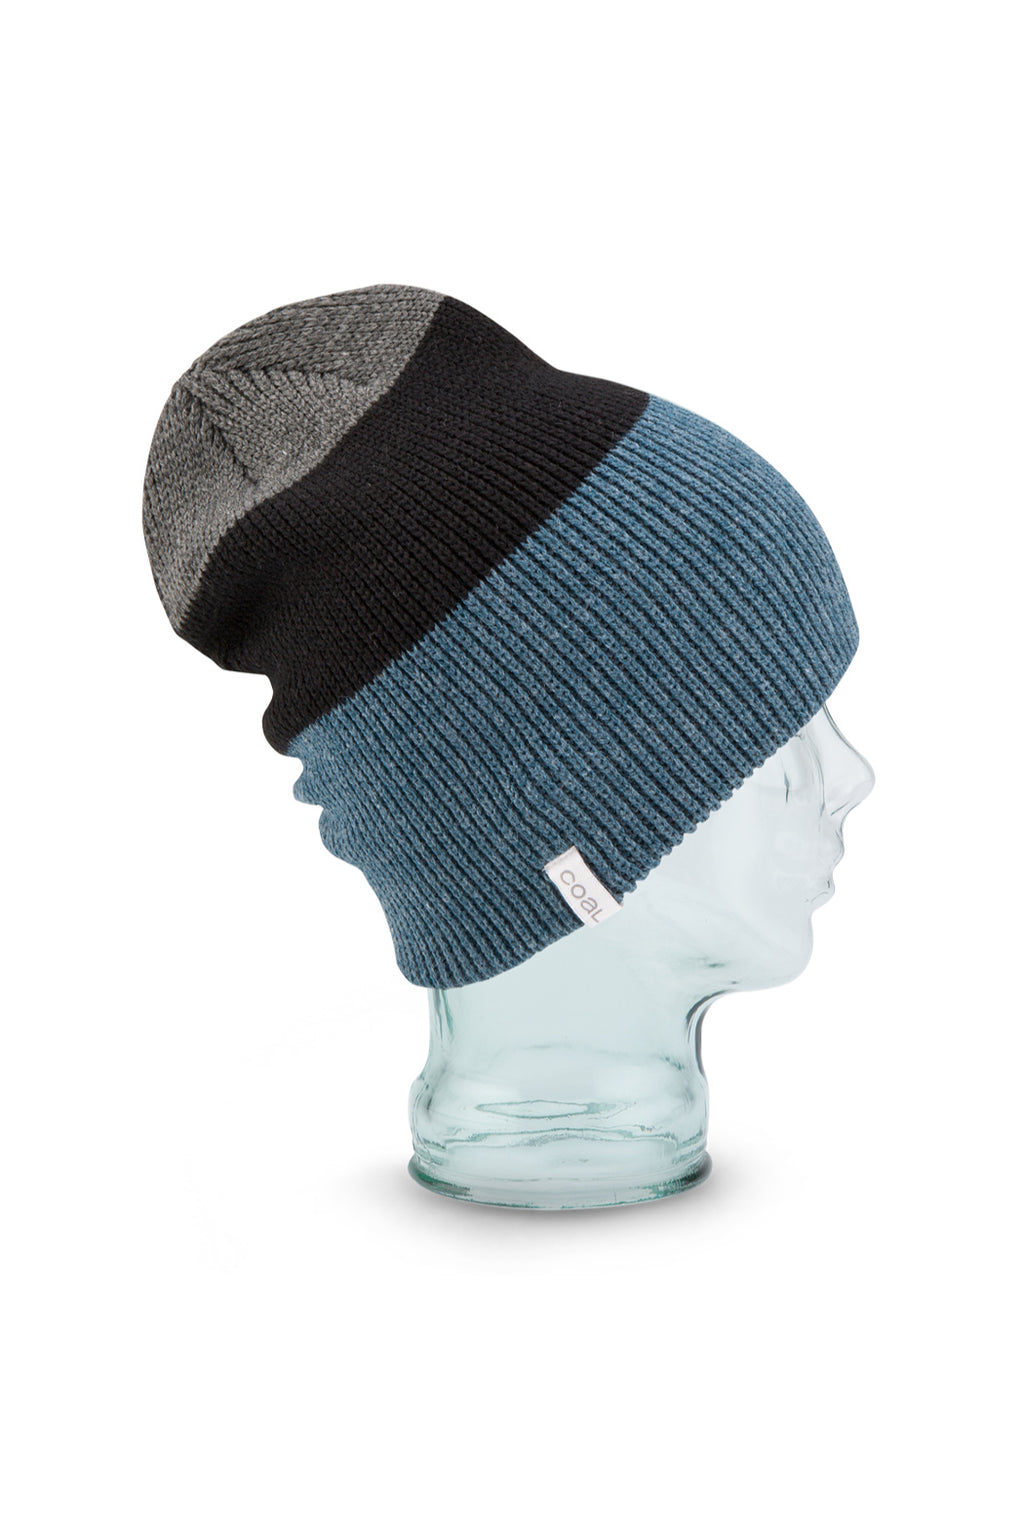 Coal Frena Beanie - Heather Slate Stripe